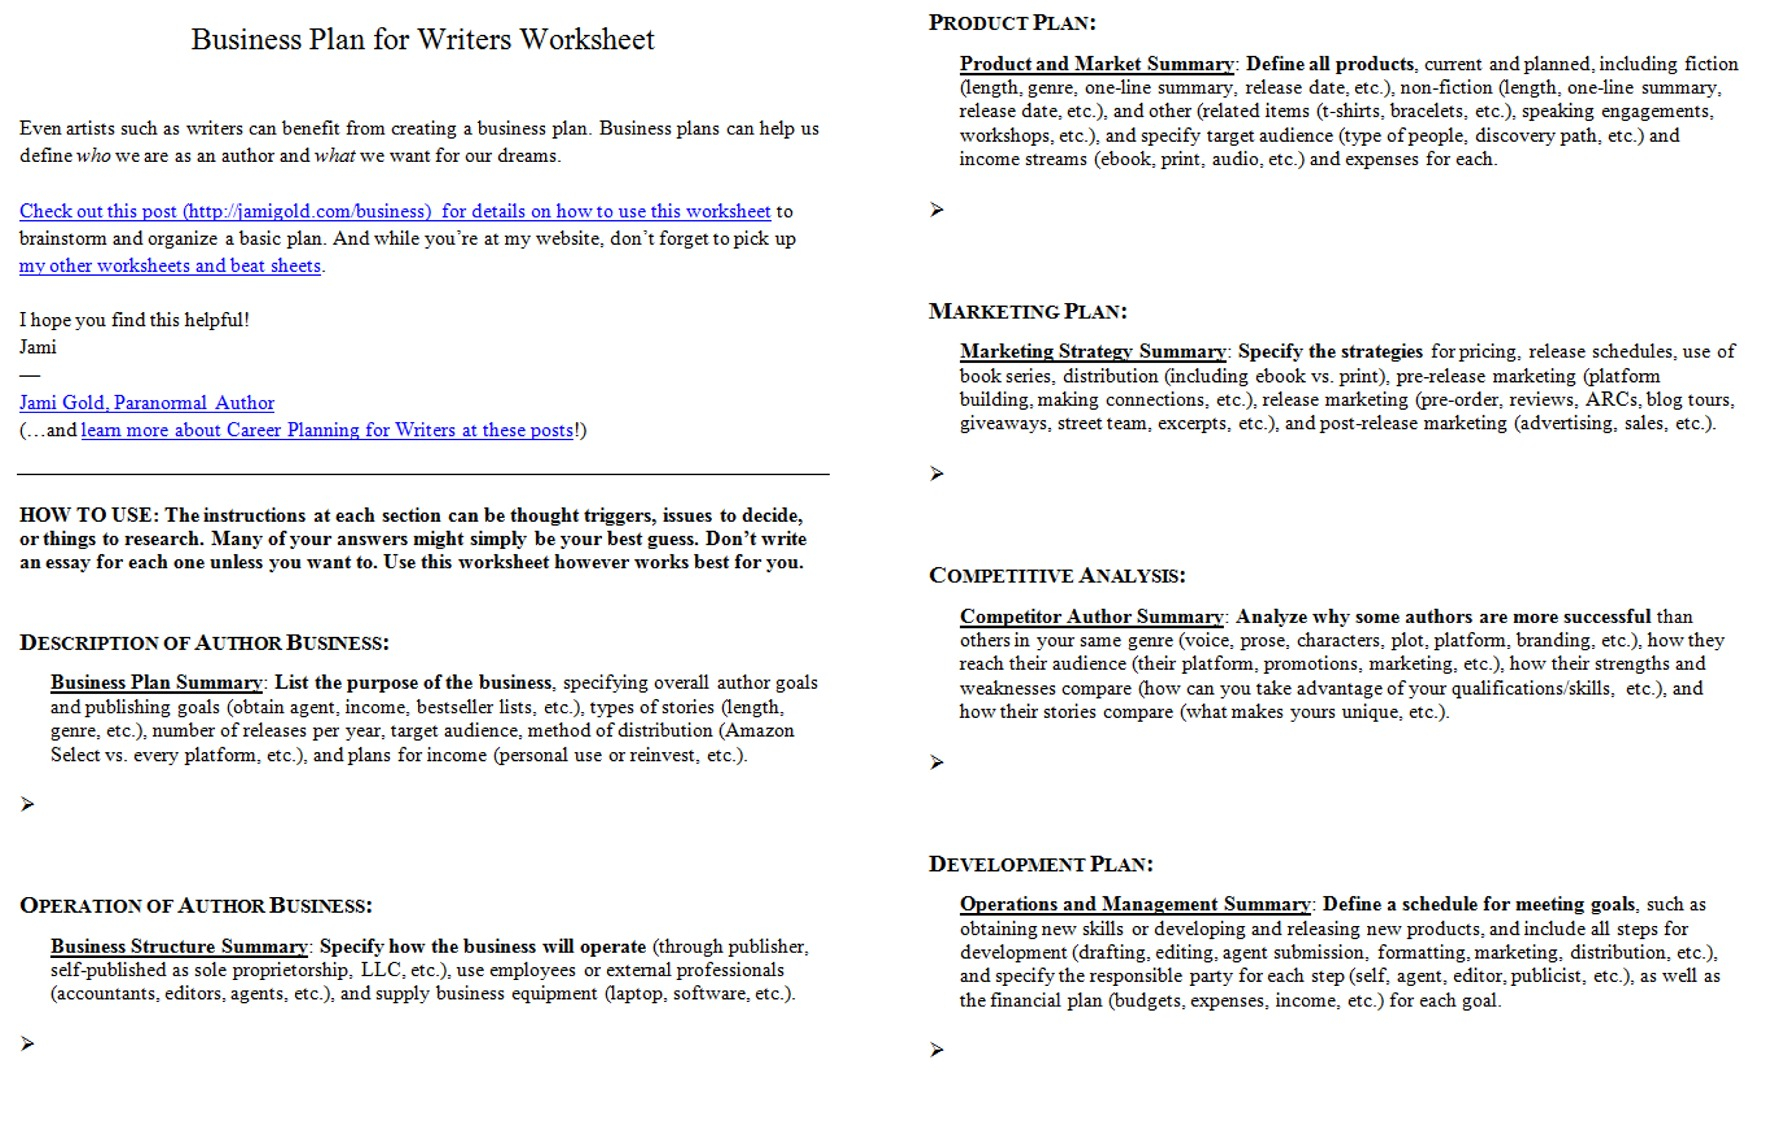 Aldiablosus  Winning Worksheets For Writers  Jami Gold Paranormal Author With Exciting Screen Shot Of Both Pages Of The Business Plan For Writers Worksheet With Cute Free Printable Cause And Effect Worksheets Also Rd Grade Elapsed Time Worksheets In Addition Polar Express Math Worksheets And Student Loan Worksheet As Well As Science Worksheets For Th Graders Additionally Main Verbs And Helping Verbs Worksheets From Jamigoldcom With Aldiablosus  Exciting Worksheets For Writers  Jami Gold Paranormal Author With Cute Screen Shot Of Both Pages Of The Business Plan For Writers Worksheet And Winning Free Printable Cause And Effect Worksheets Also Rd Grade Elapsed Time Worksheets In Addition Polar Express Math Worksheets From Jamigoldcom